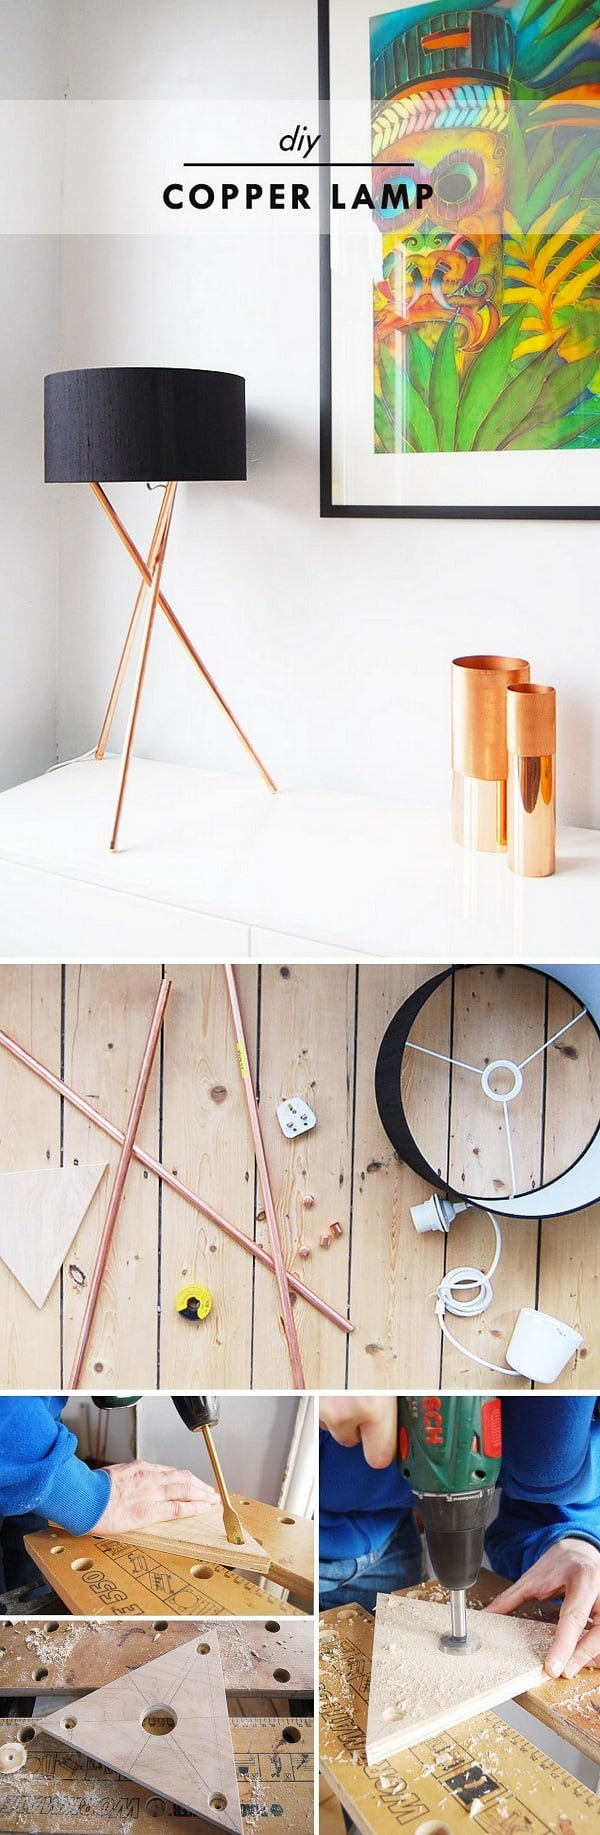 16 Trendy DIY Ideas to Decorate with Copper - Check out the tutorial for an easy to make   lamp